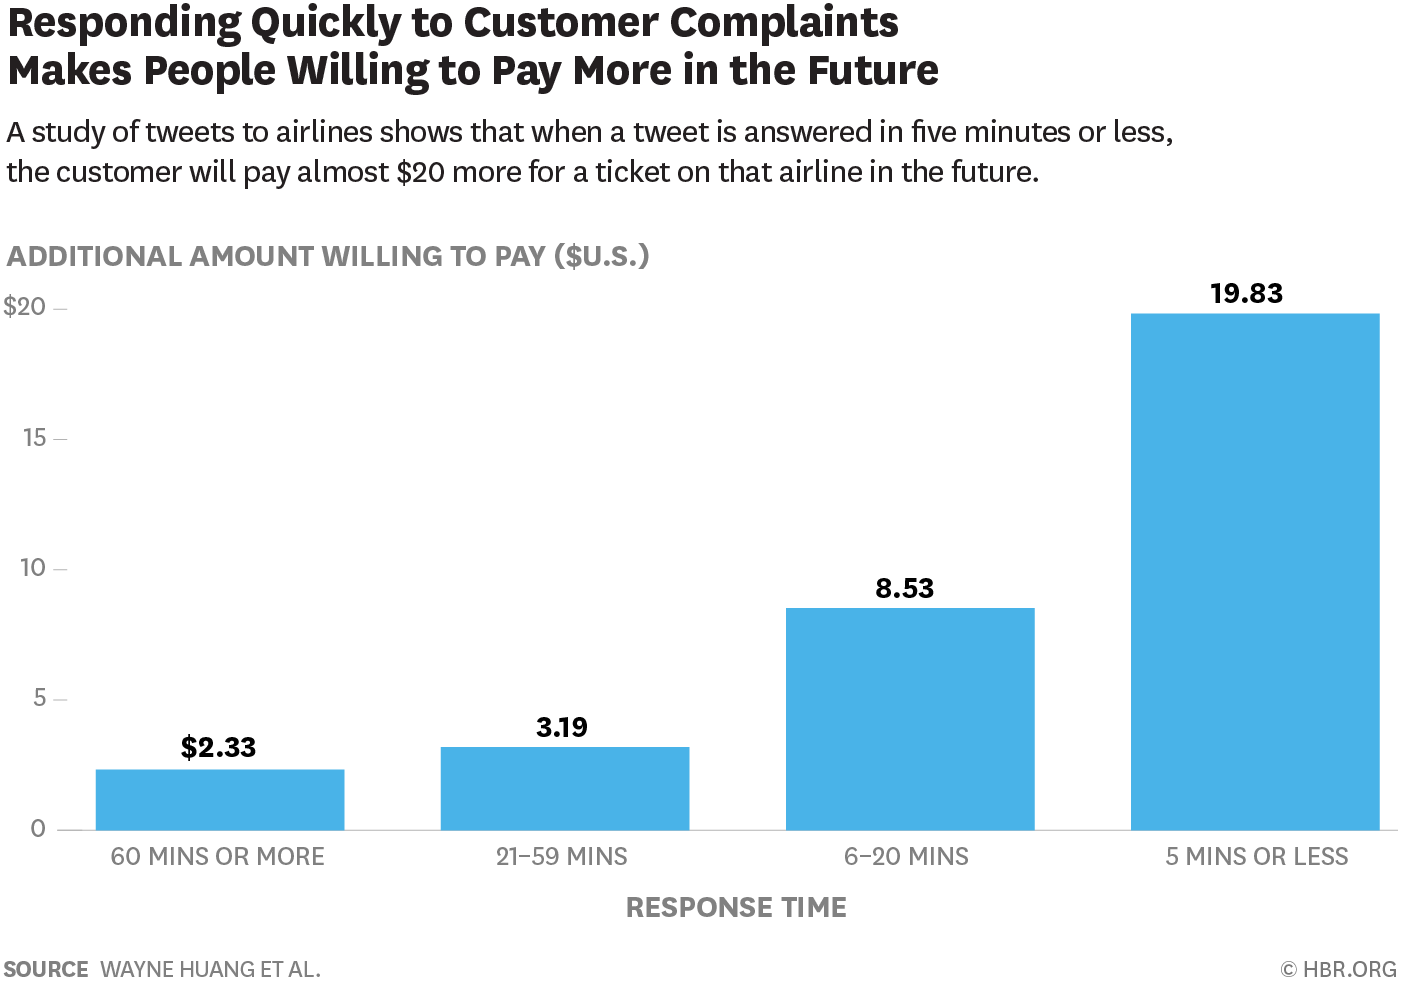 responding quickly makes customers want to pay more